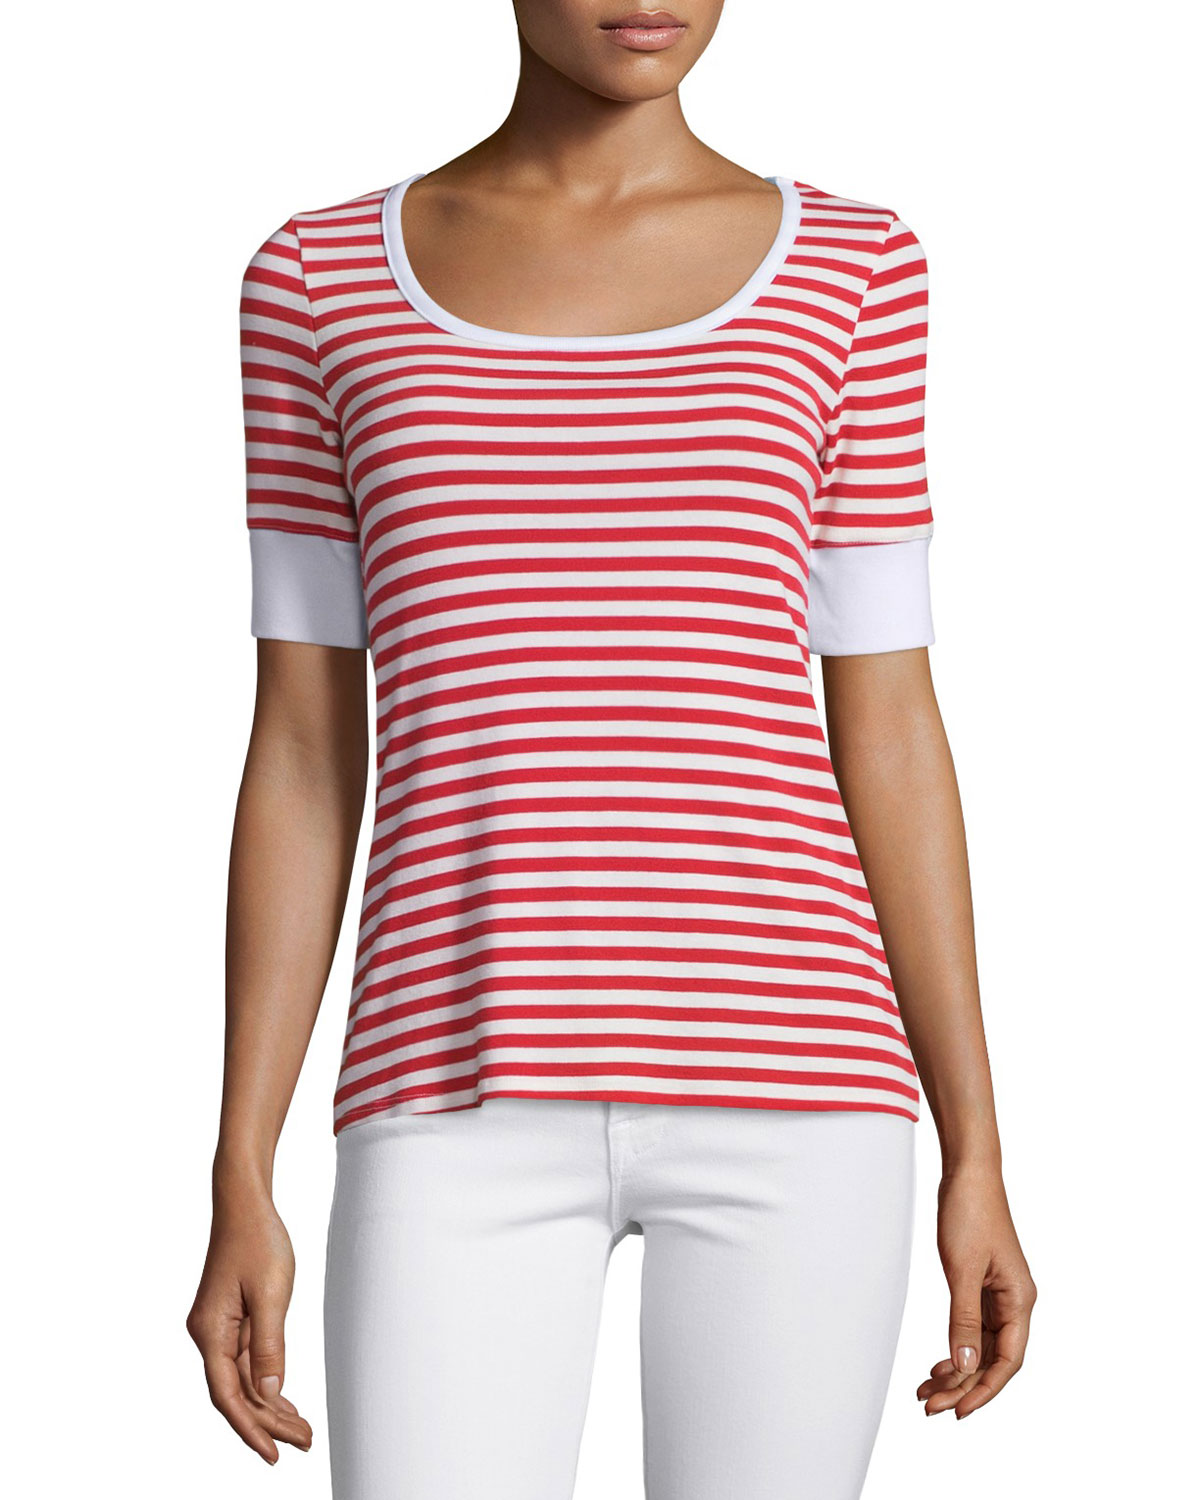 Boatneck Striped Tee, Red Stripe